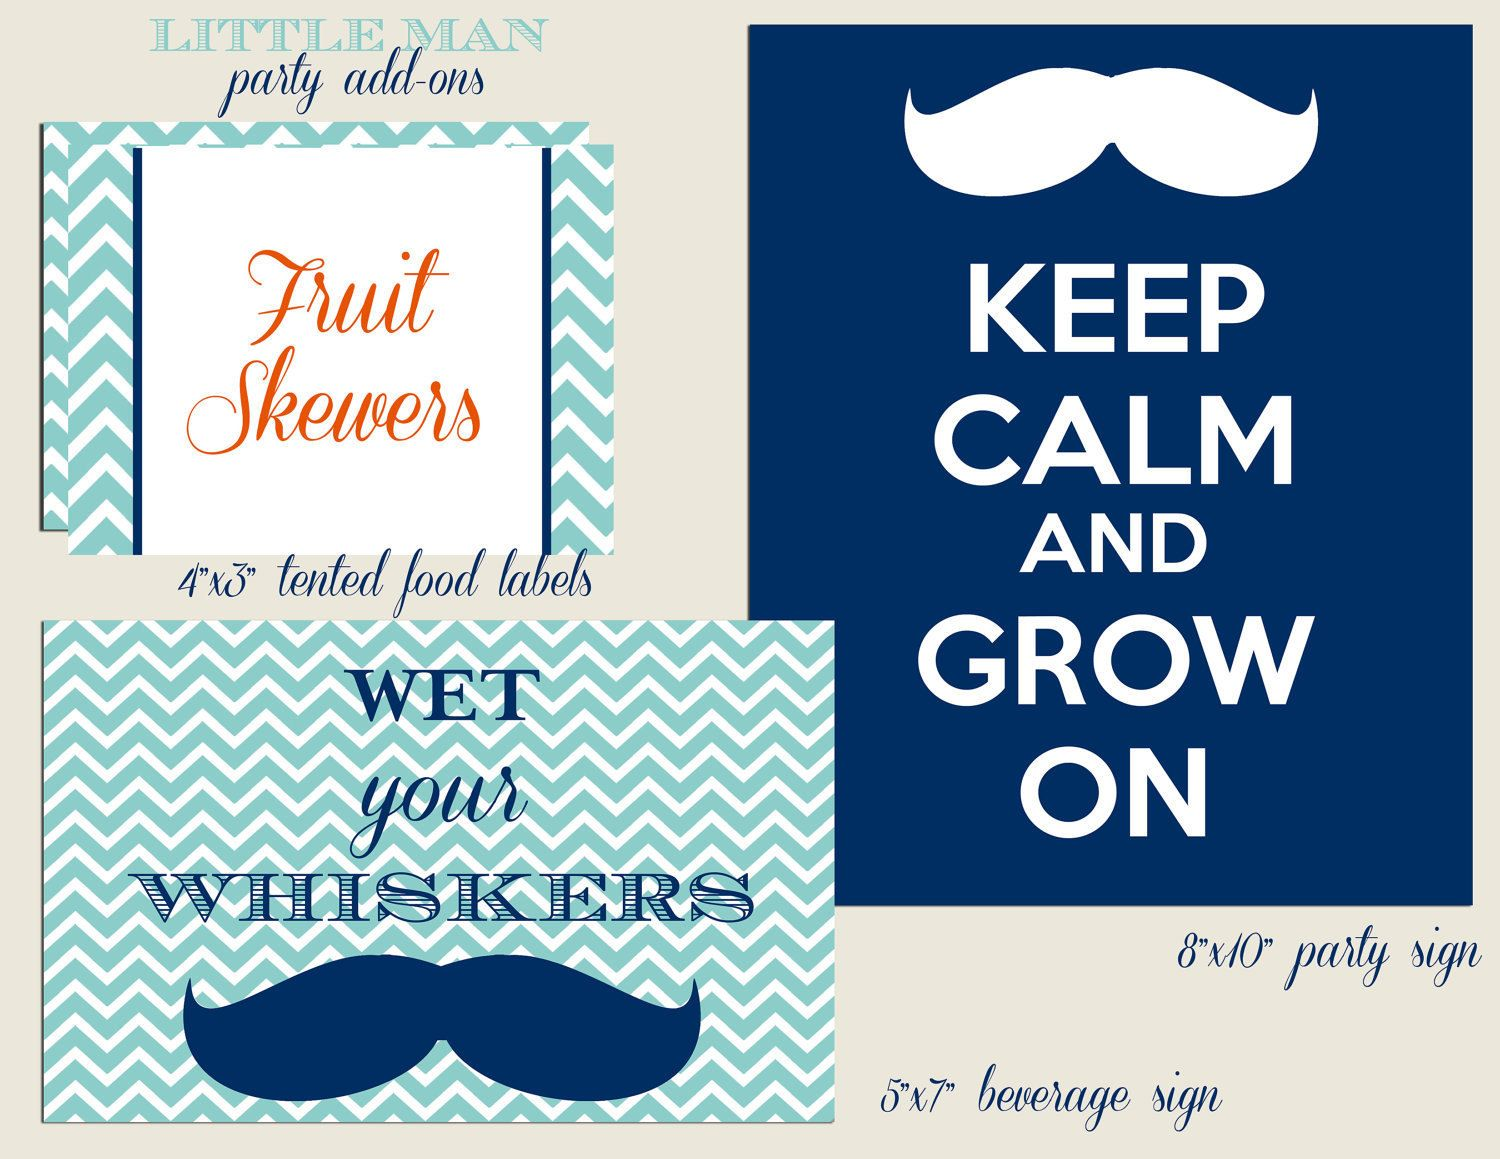 Little man mustache party addons by shopcookiecouture on etsy